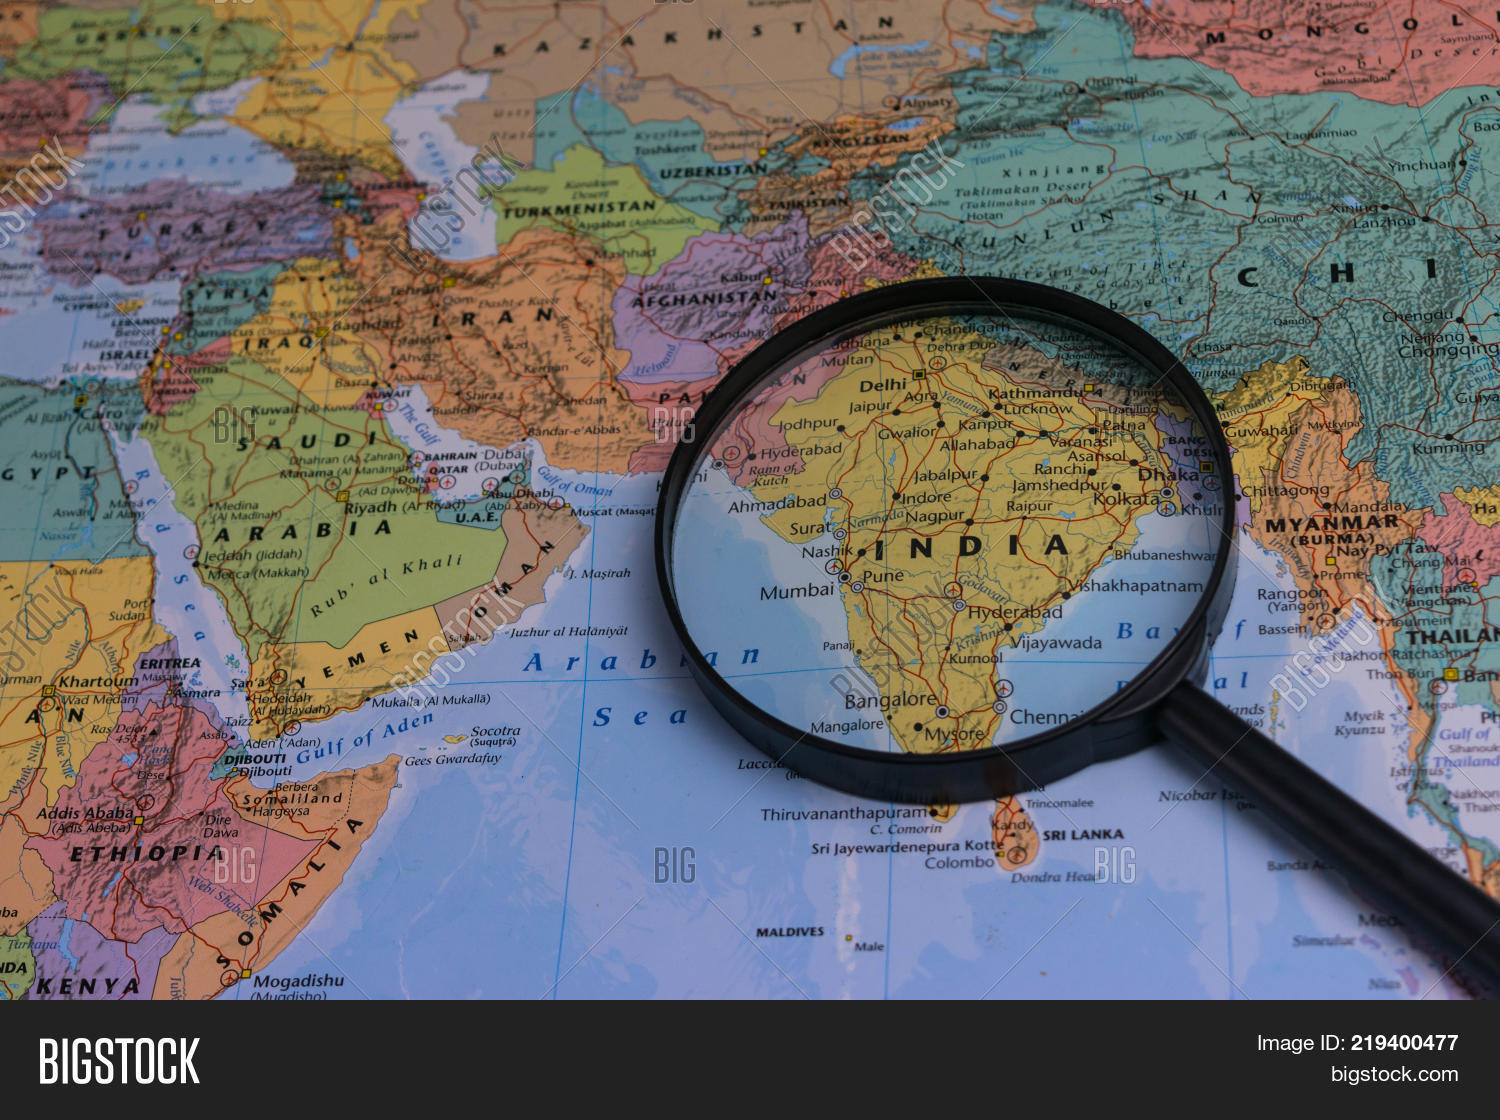 india map through magnifying glass on a